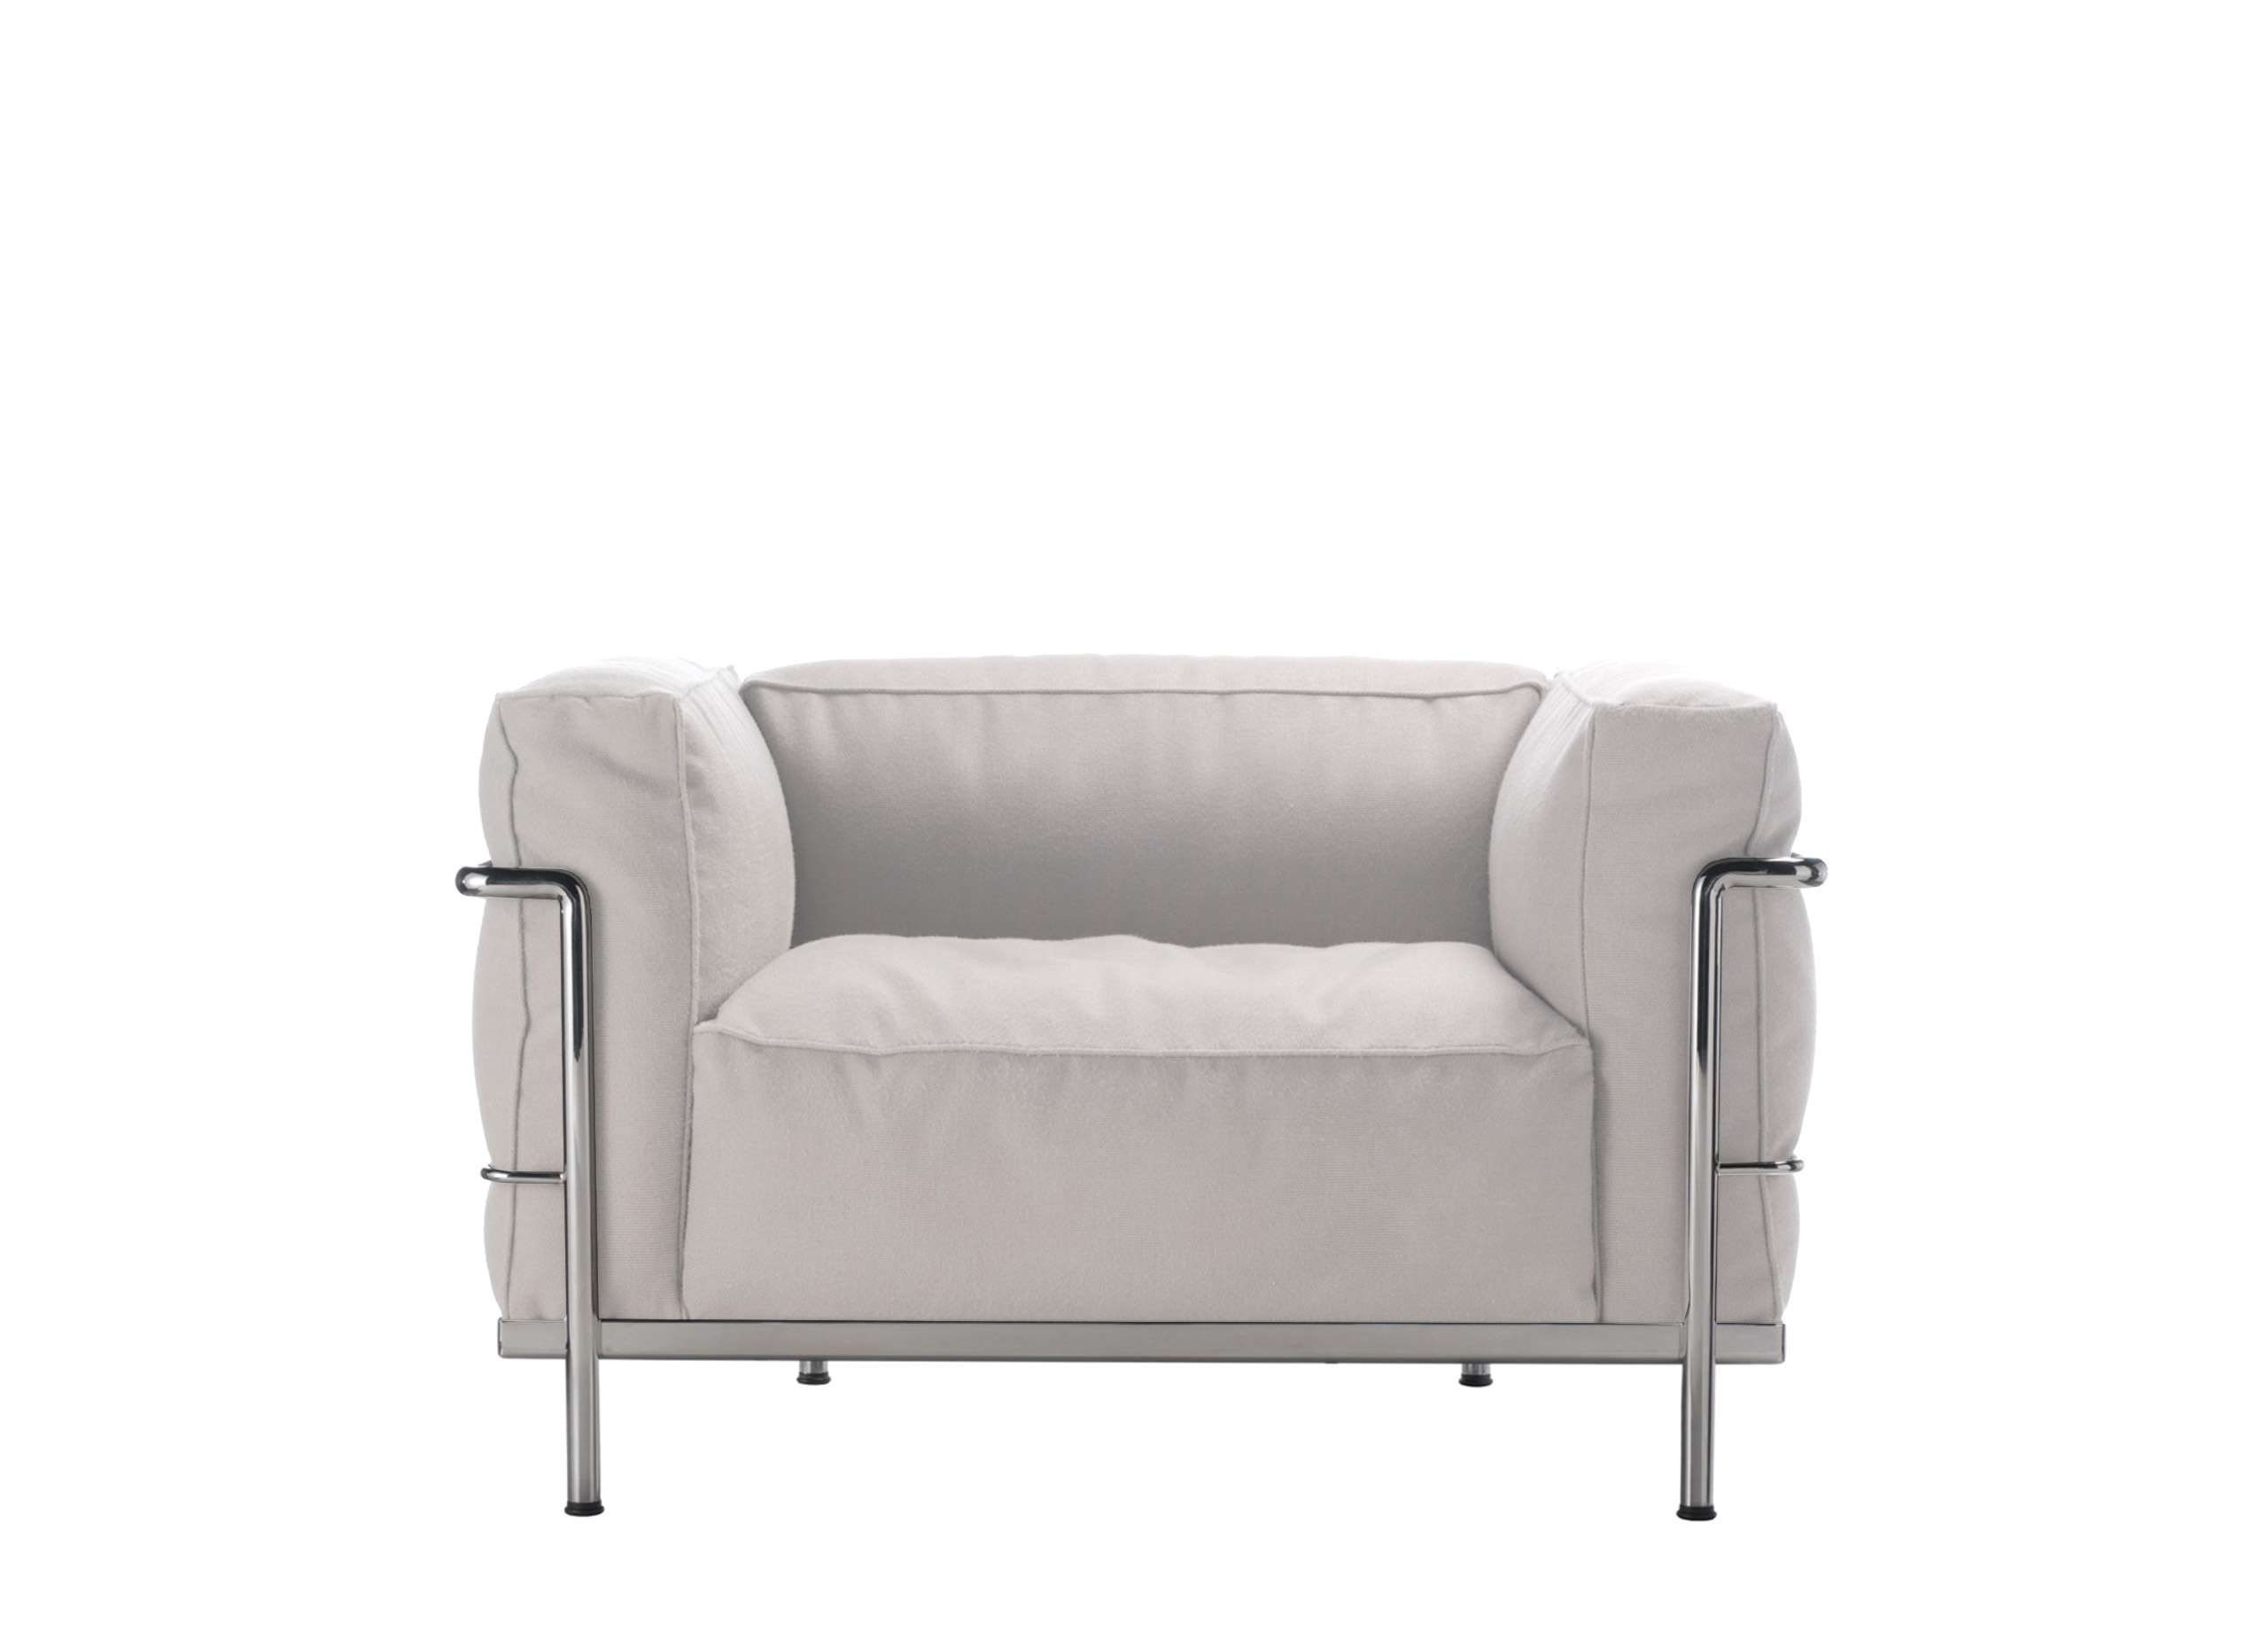 Lounge sessel garten gebraucht  Cassina | LC3 Outdoor Sofa & Sessel | The Qvest Shop